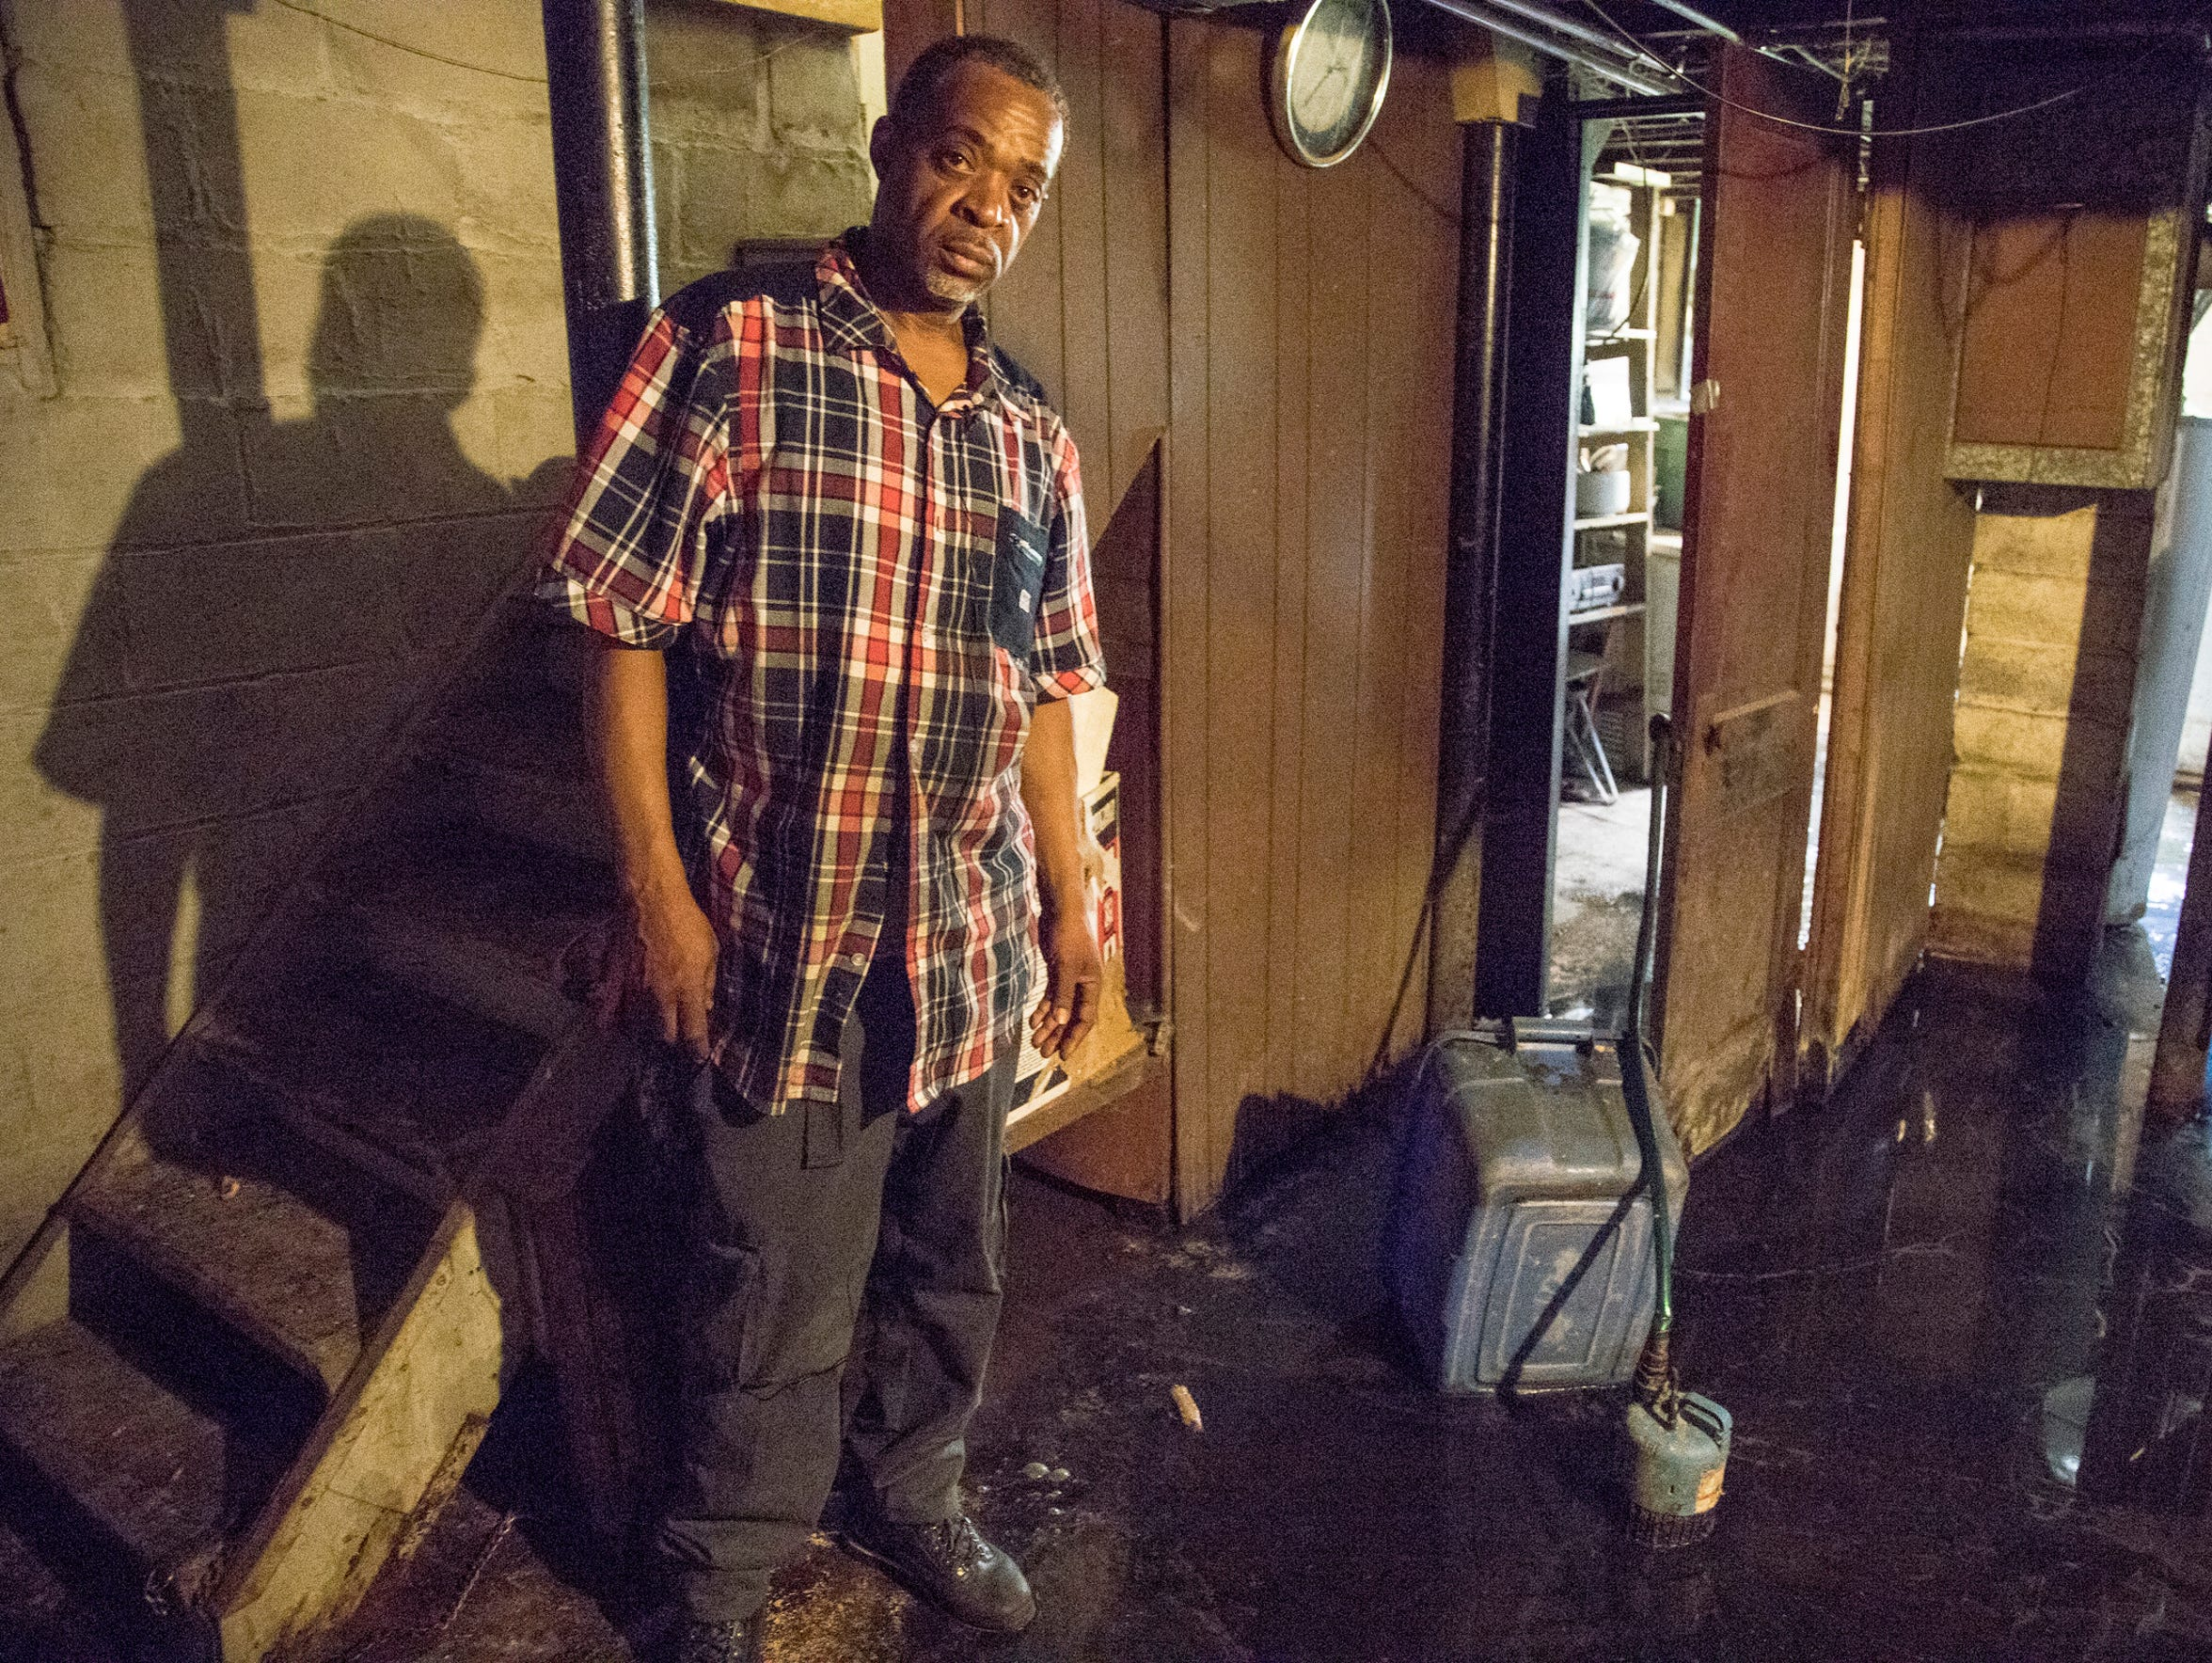 William Love poses in May for a photo in the flooded basement of the house on Hull Street in Detroit that he is purchasing from the land bank. (Photo taken May 31, 2018)